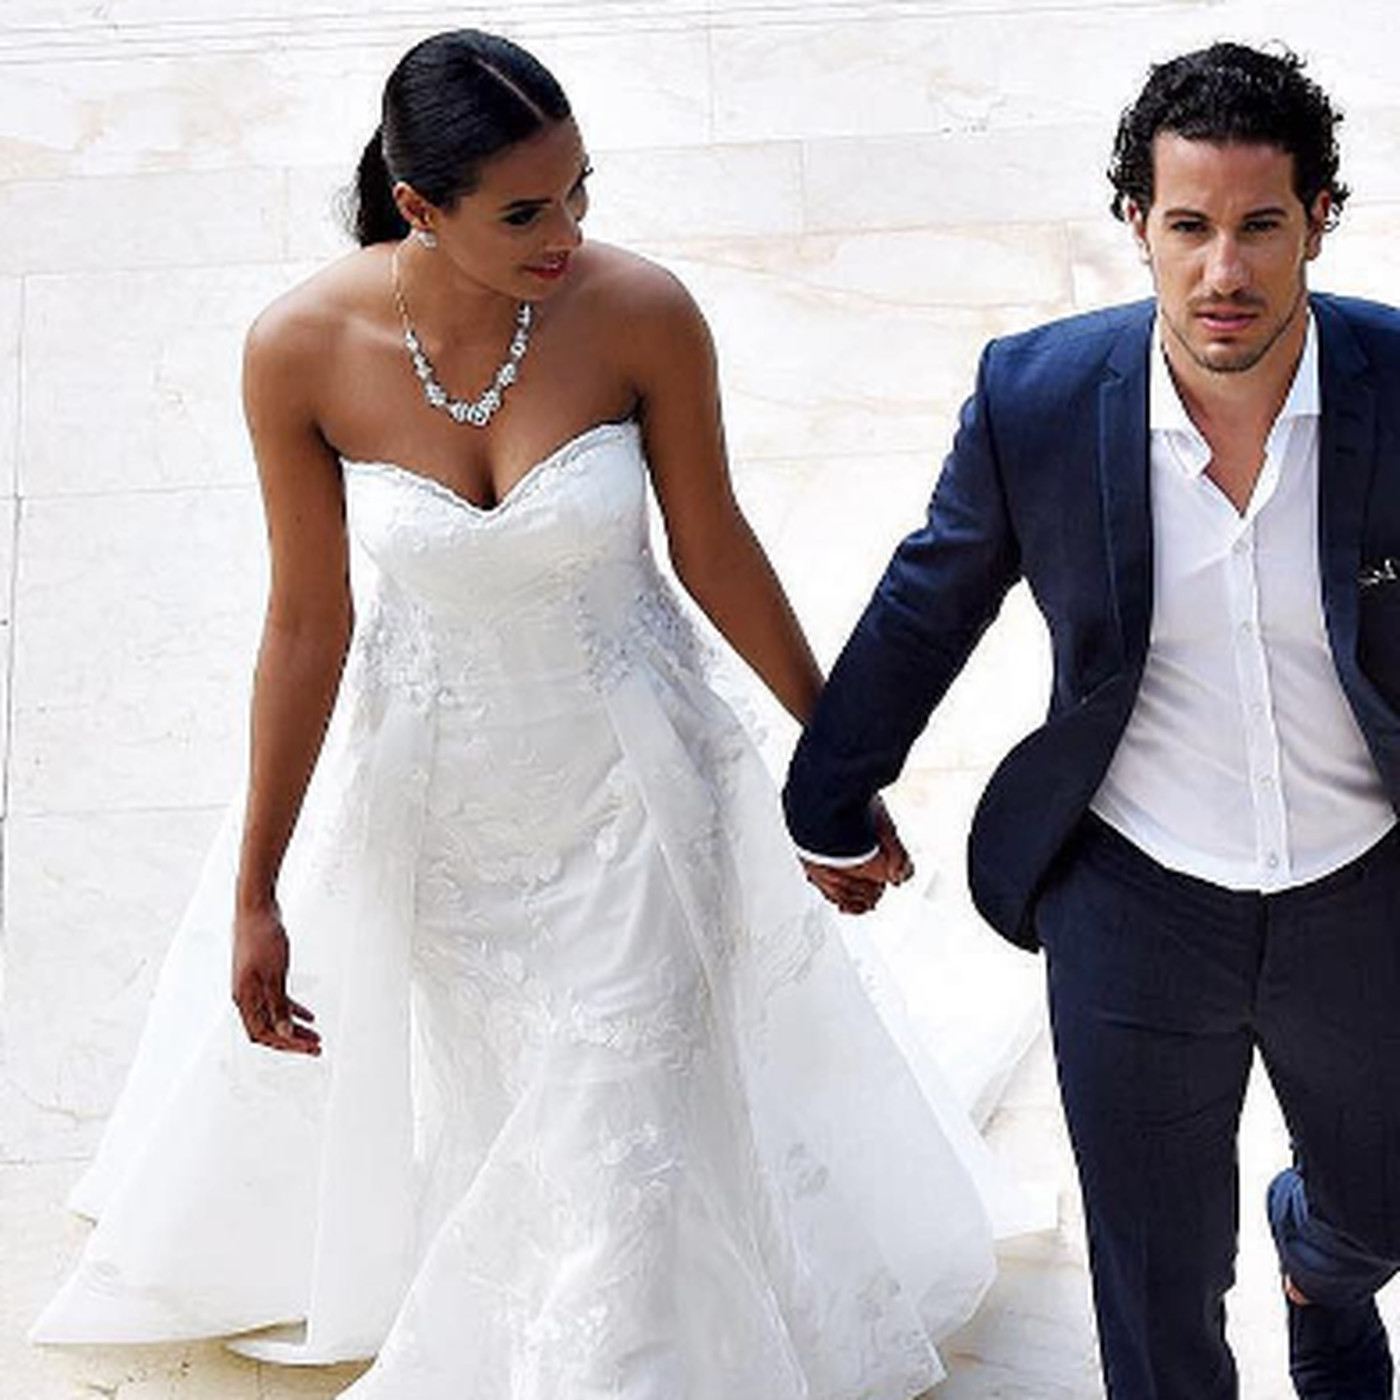 Michael Del Zotto Does Wedding Photoshoot Does Not Actually Get